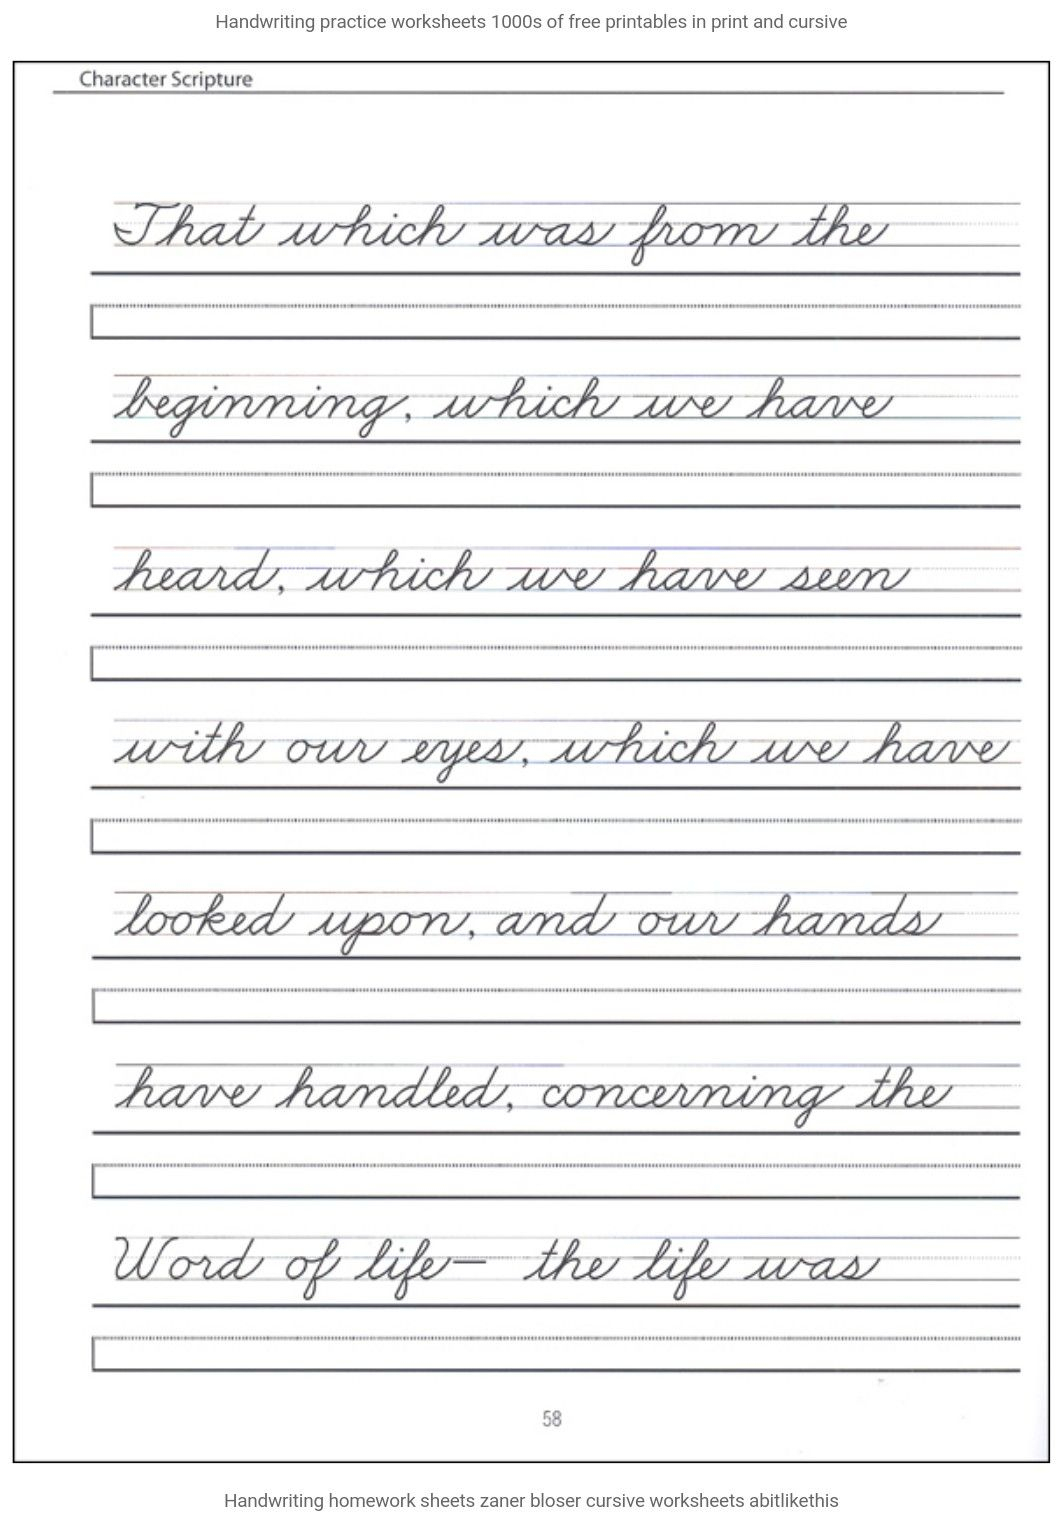 Pinannette 🌸🌼🌺 On Cursive Writing | Cursive Handwriting | Cursive Writing Words Worksheets Printable